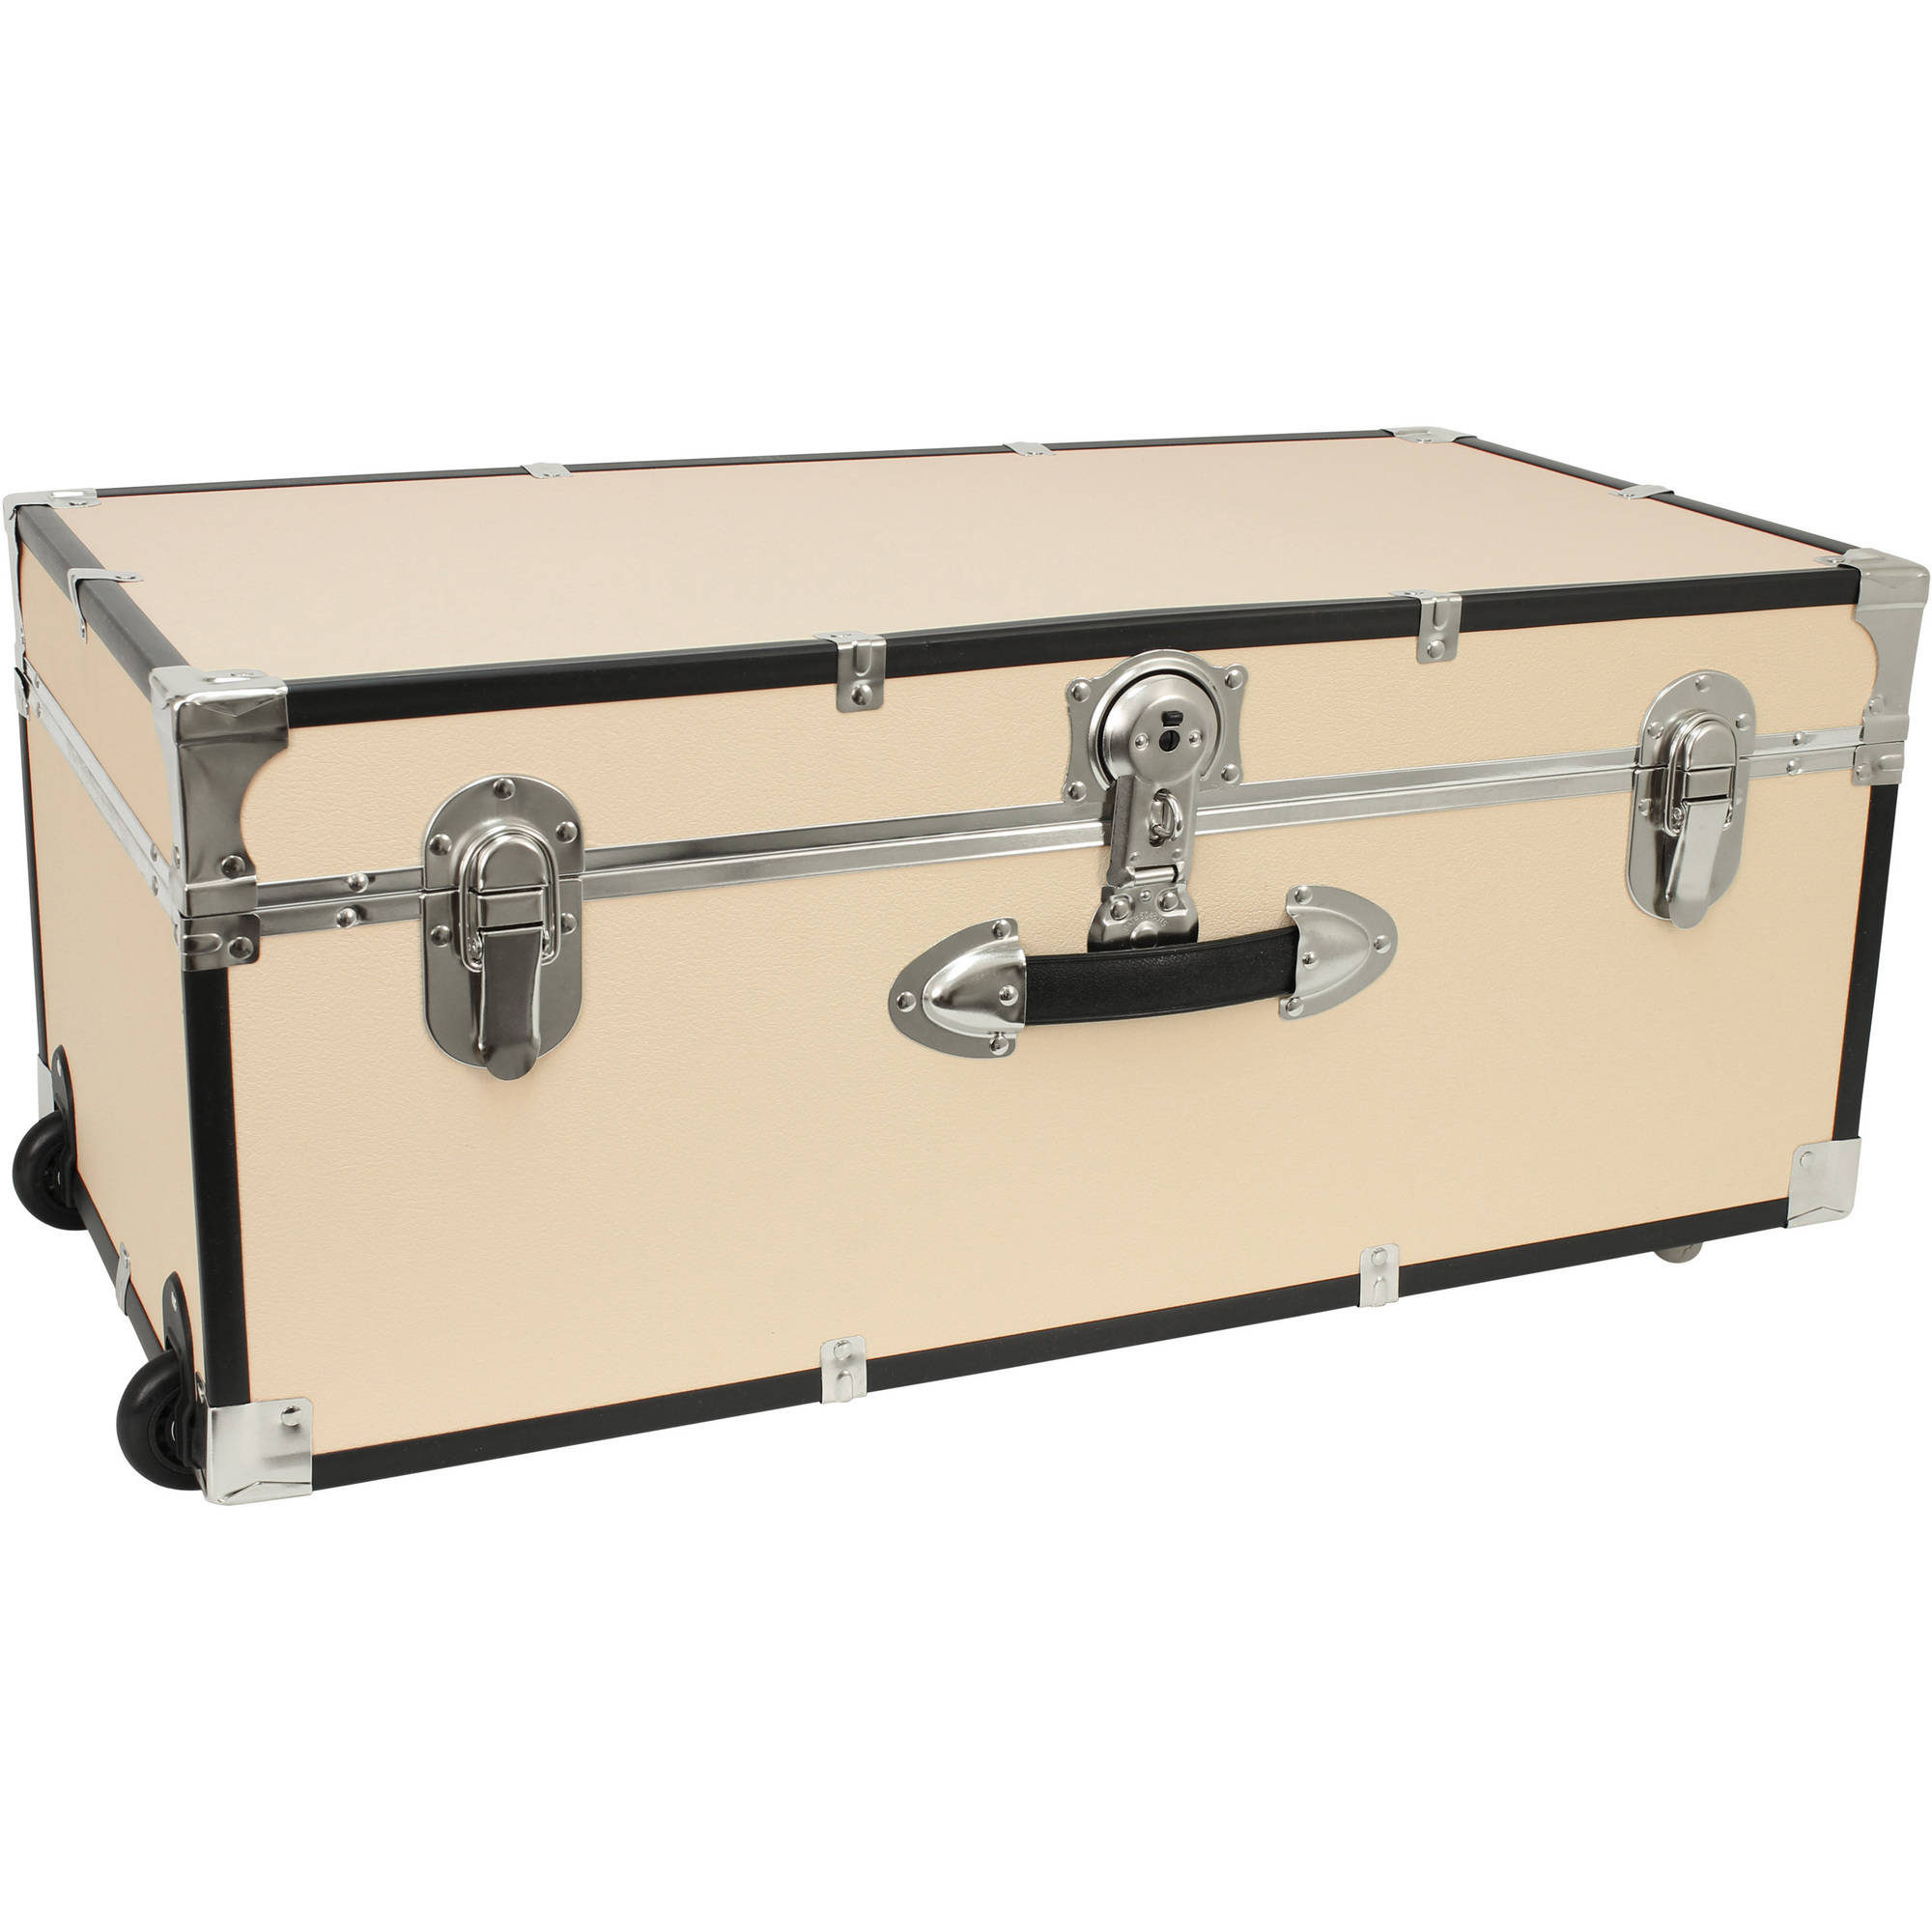 "Mercury Luggage Seward Trunk Wheeled Storage Locker, 30"", Multiple Colors"